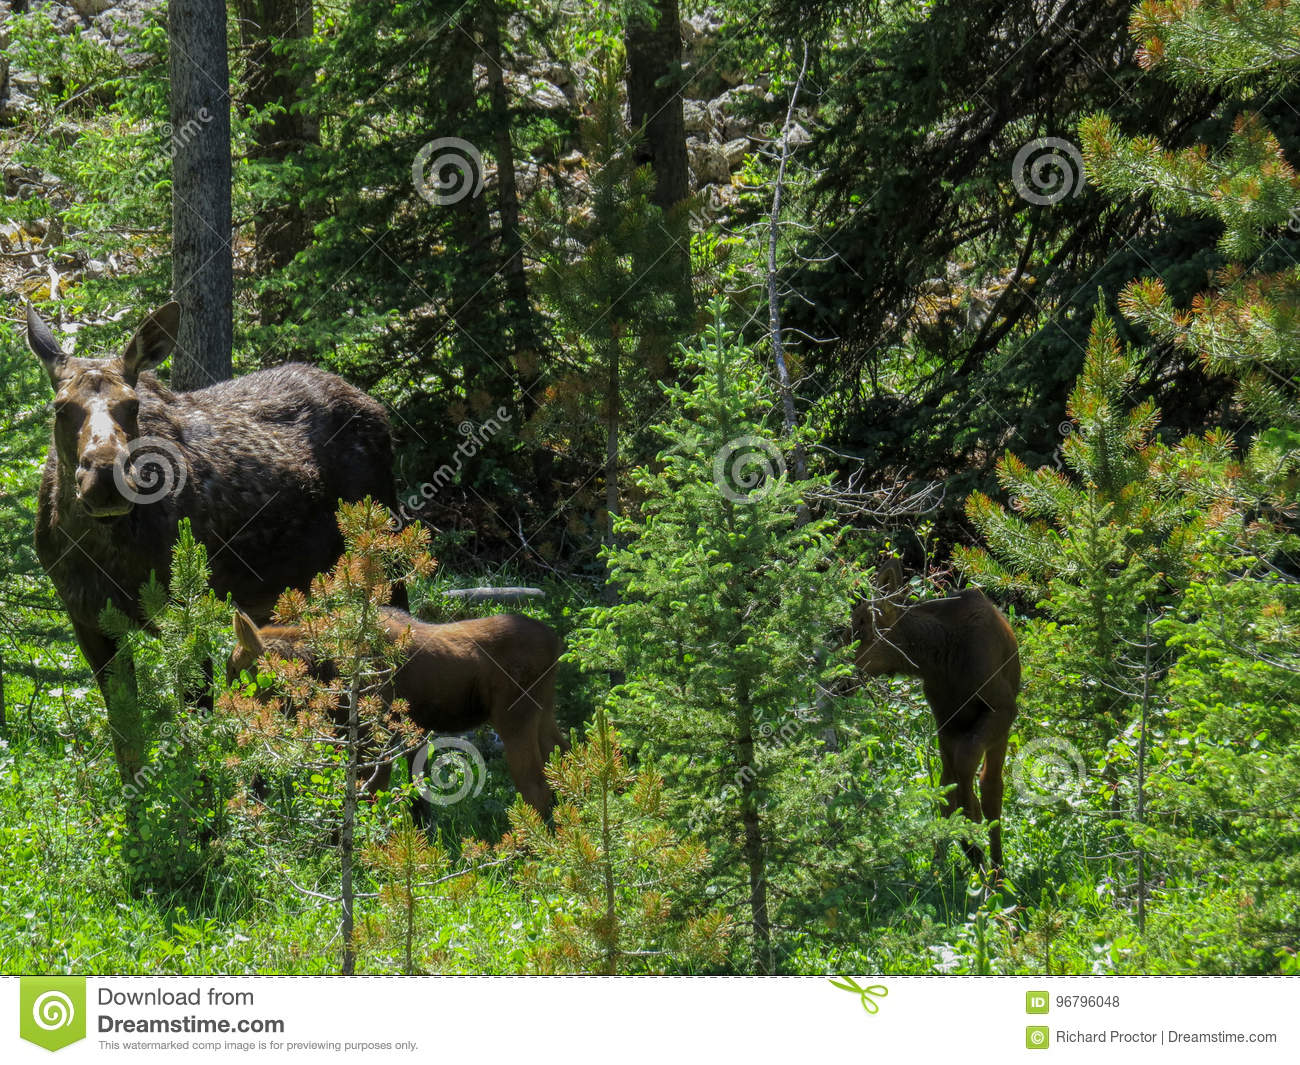 Moose in the wild with babies.